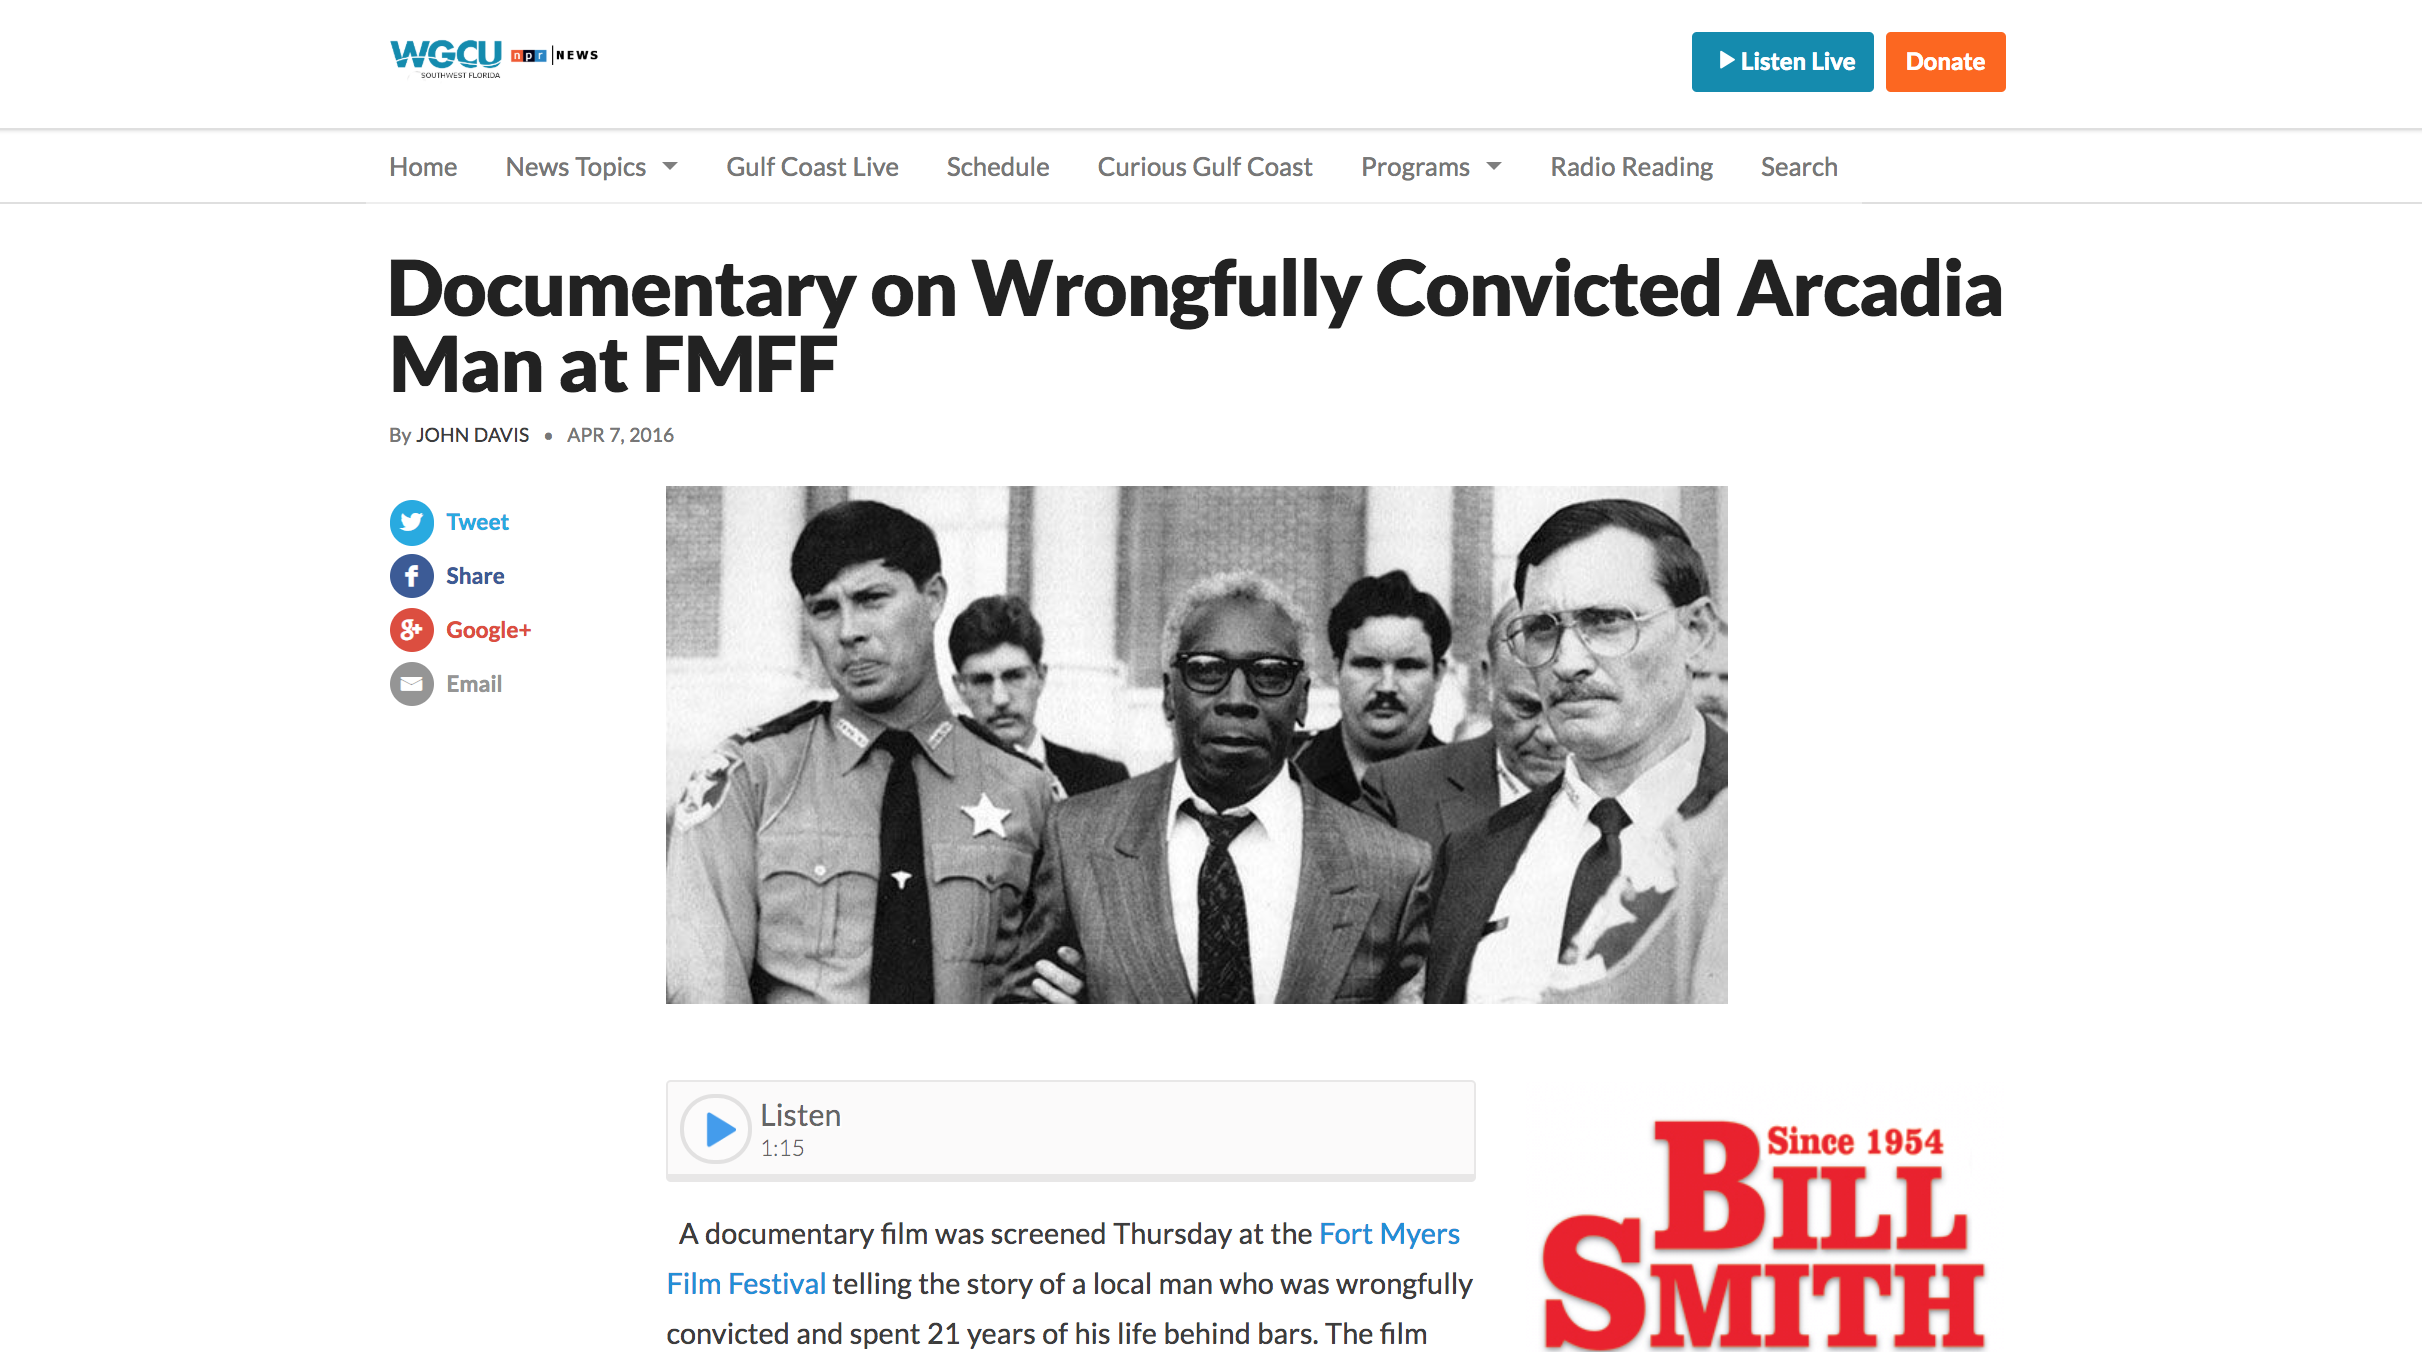 WGCU: Documentary on Wrongfully Convicted Arcadia Man at FMFF